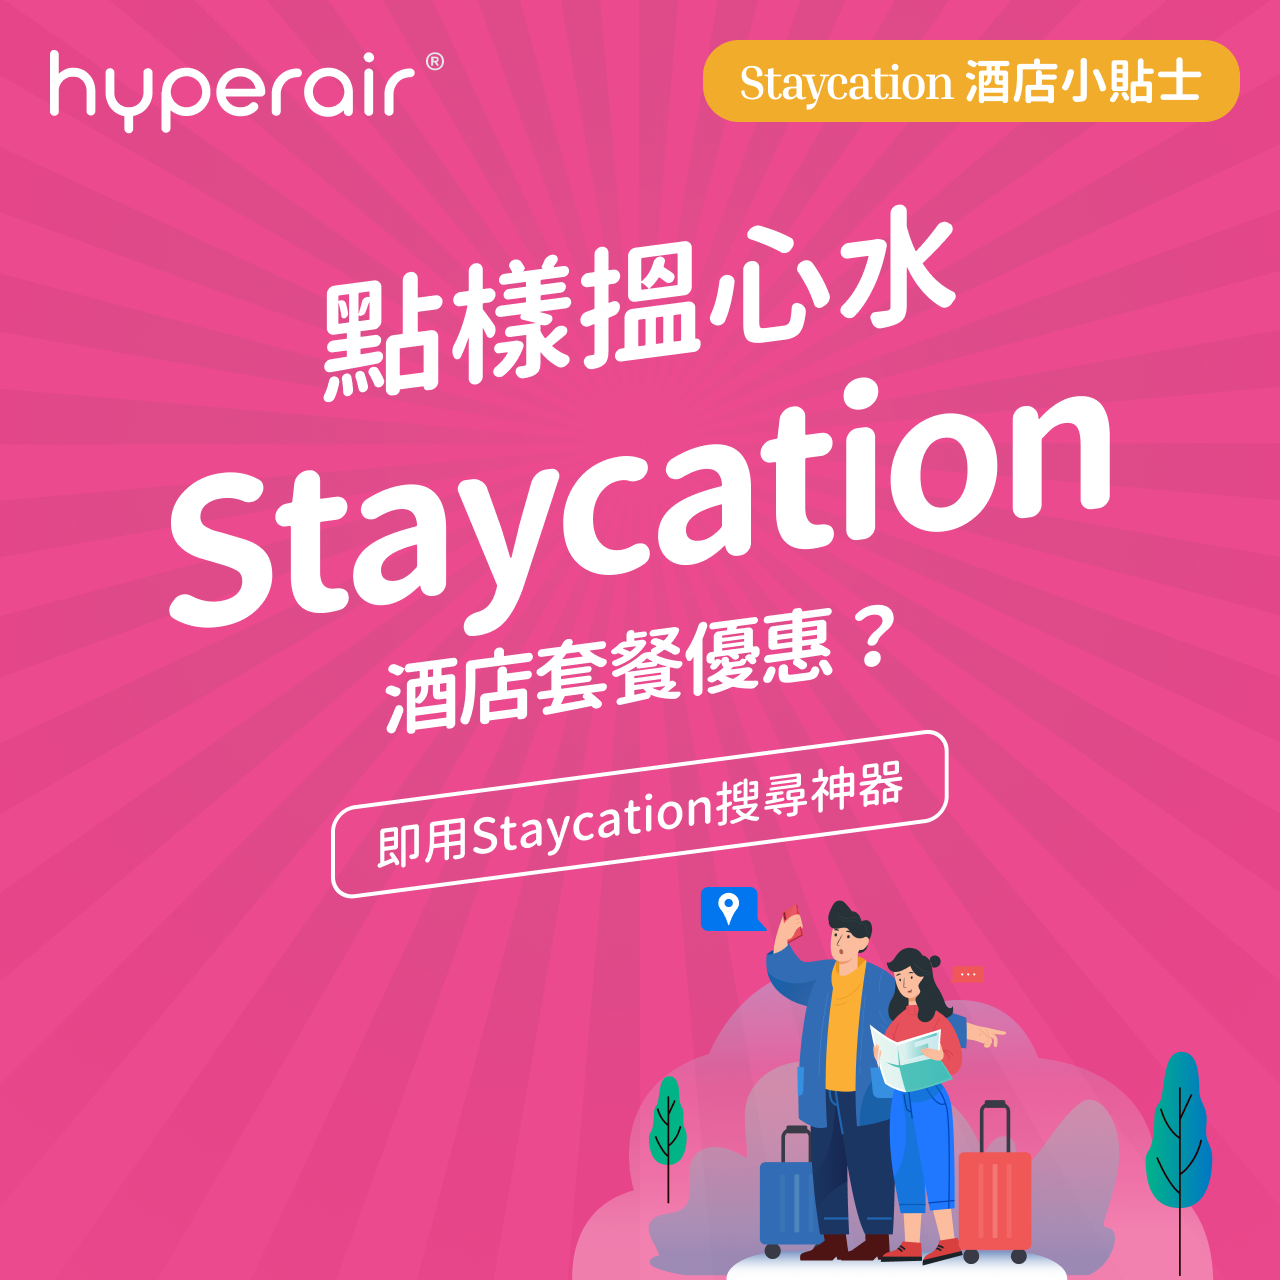 Staycation Offer